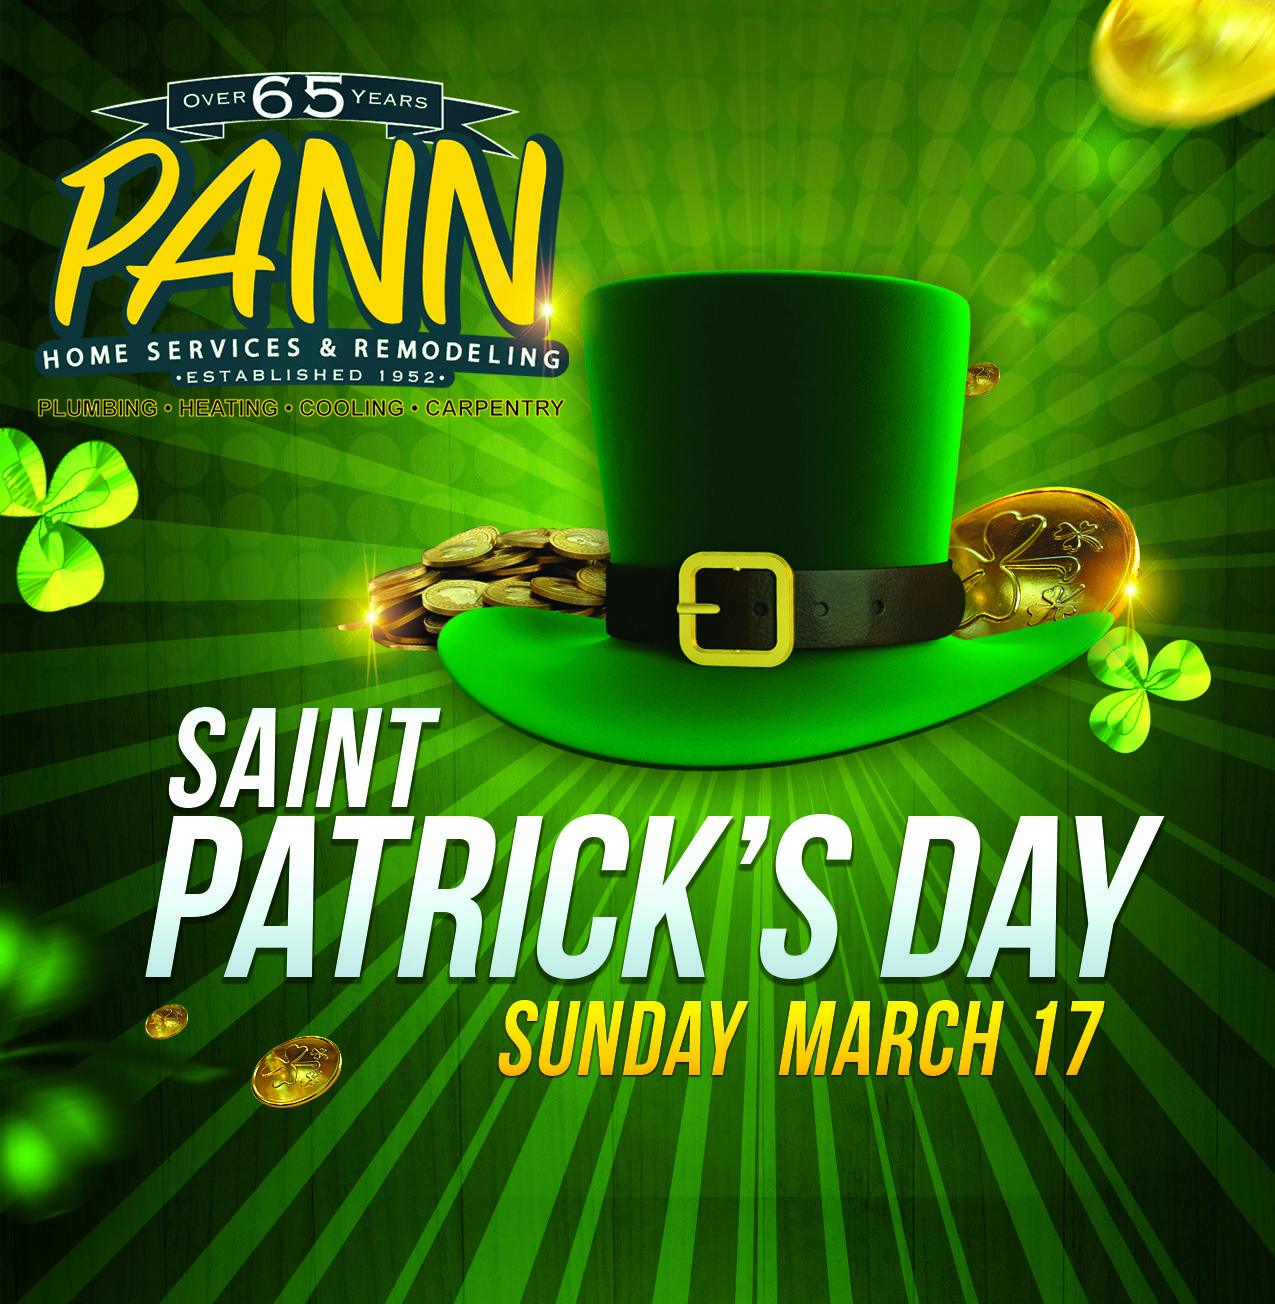 Pann Home Services Wishes You And Your Family A Happy St